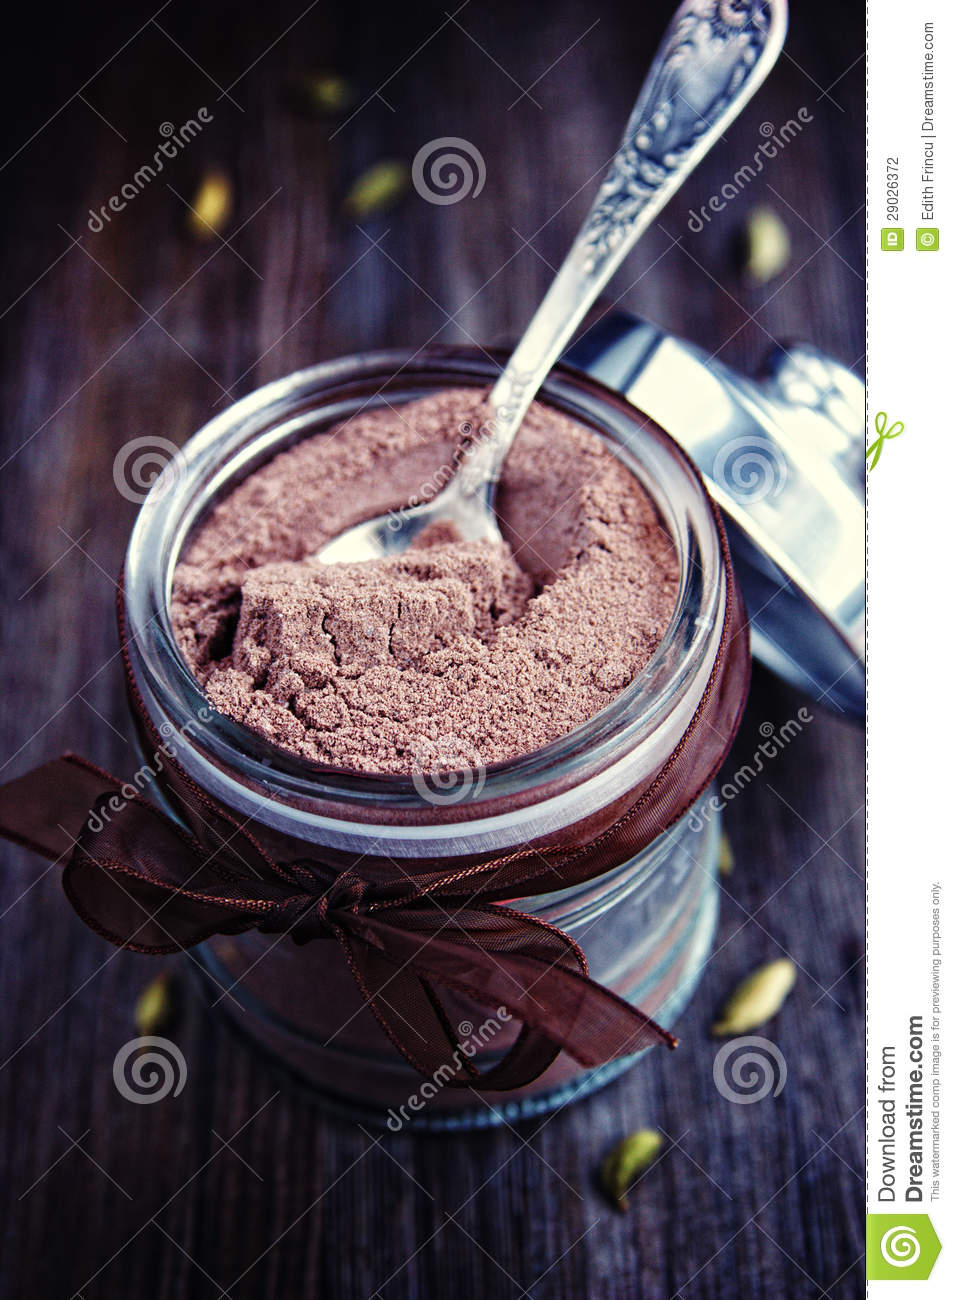 how to make hot chocolate from powder